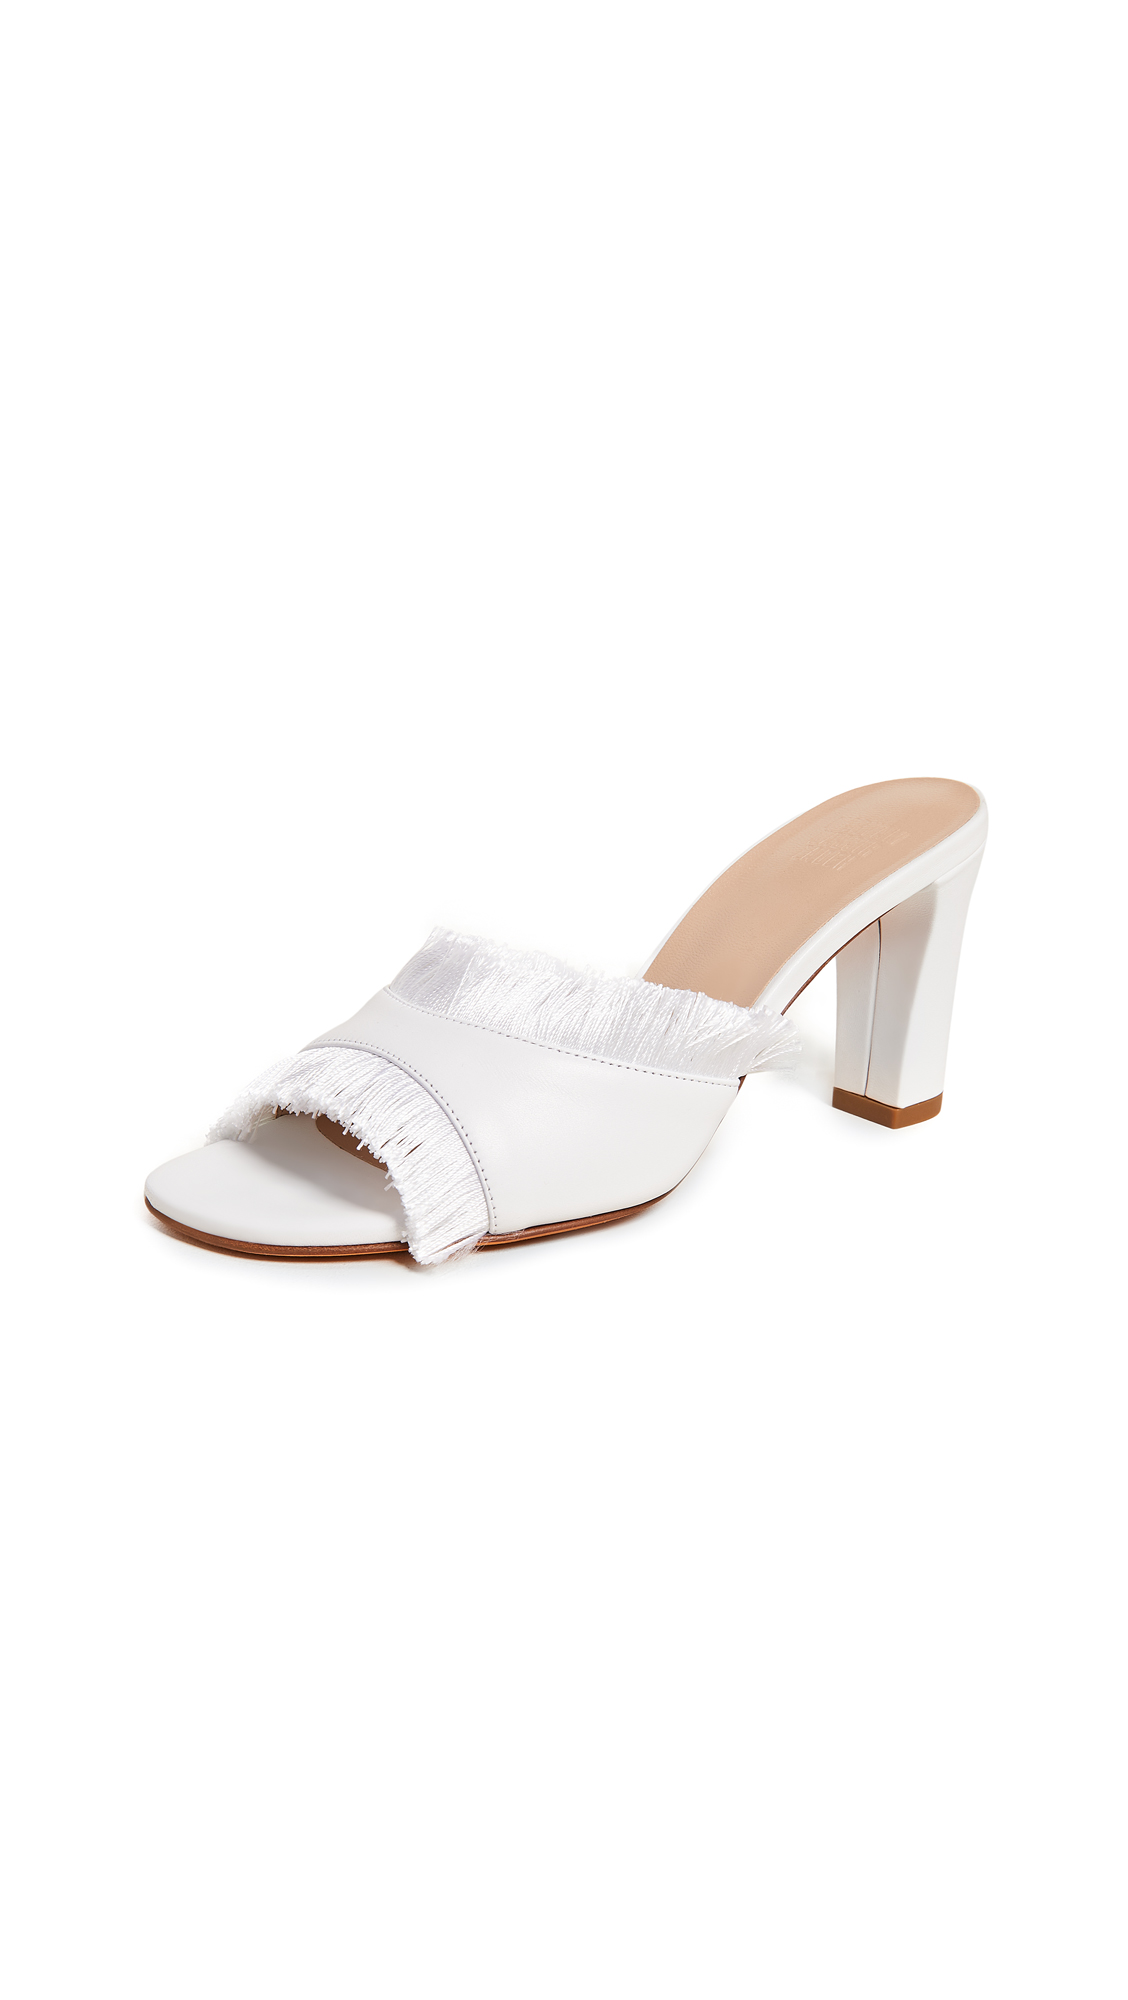 Maryam Nassir Zadeh Inga Sandals - White